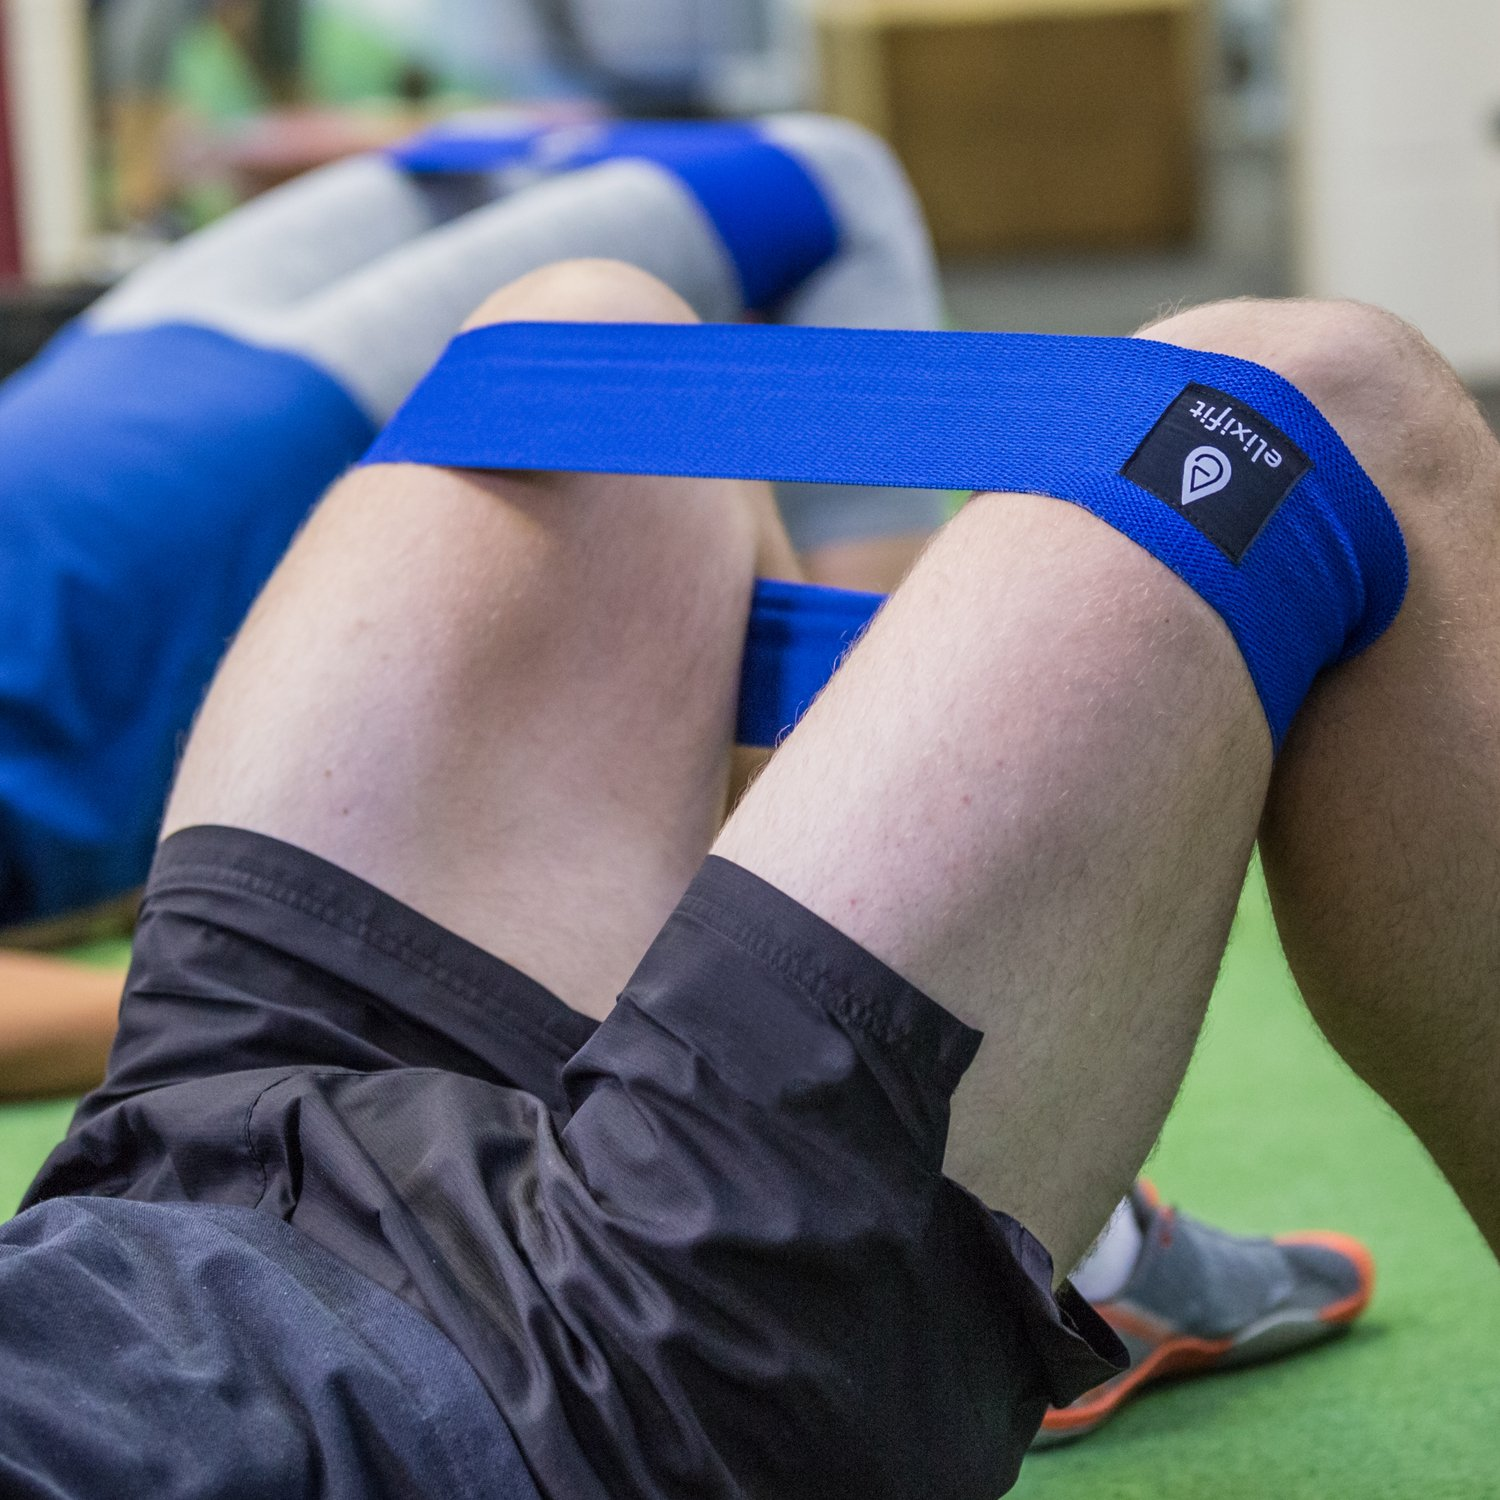 Premium Glute Resistance Band - Hip Warm Up Activation Circle -  Weightlifting Crossfit Injury Rehabilitation - Includes Glute Training  Ebook -